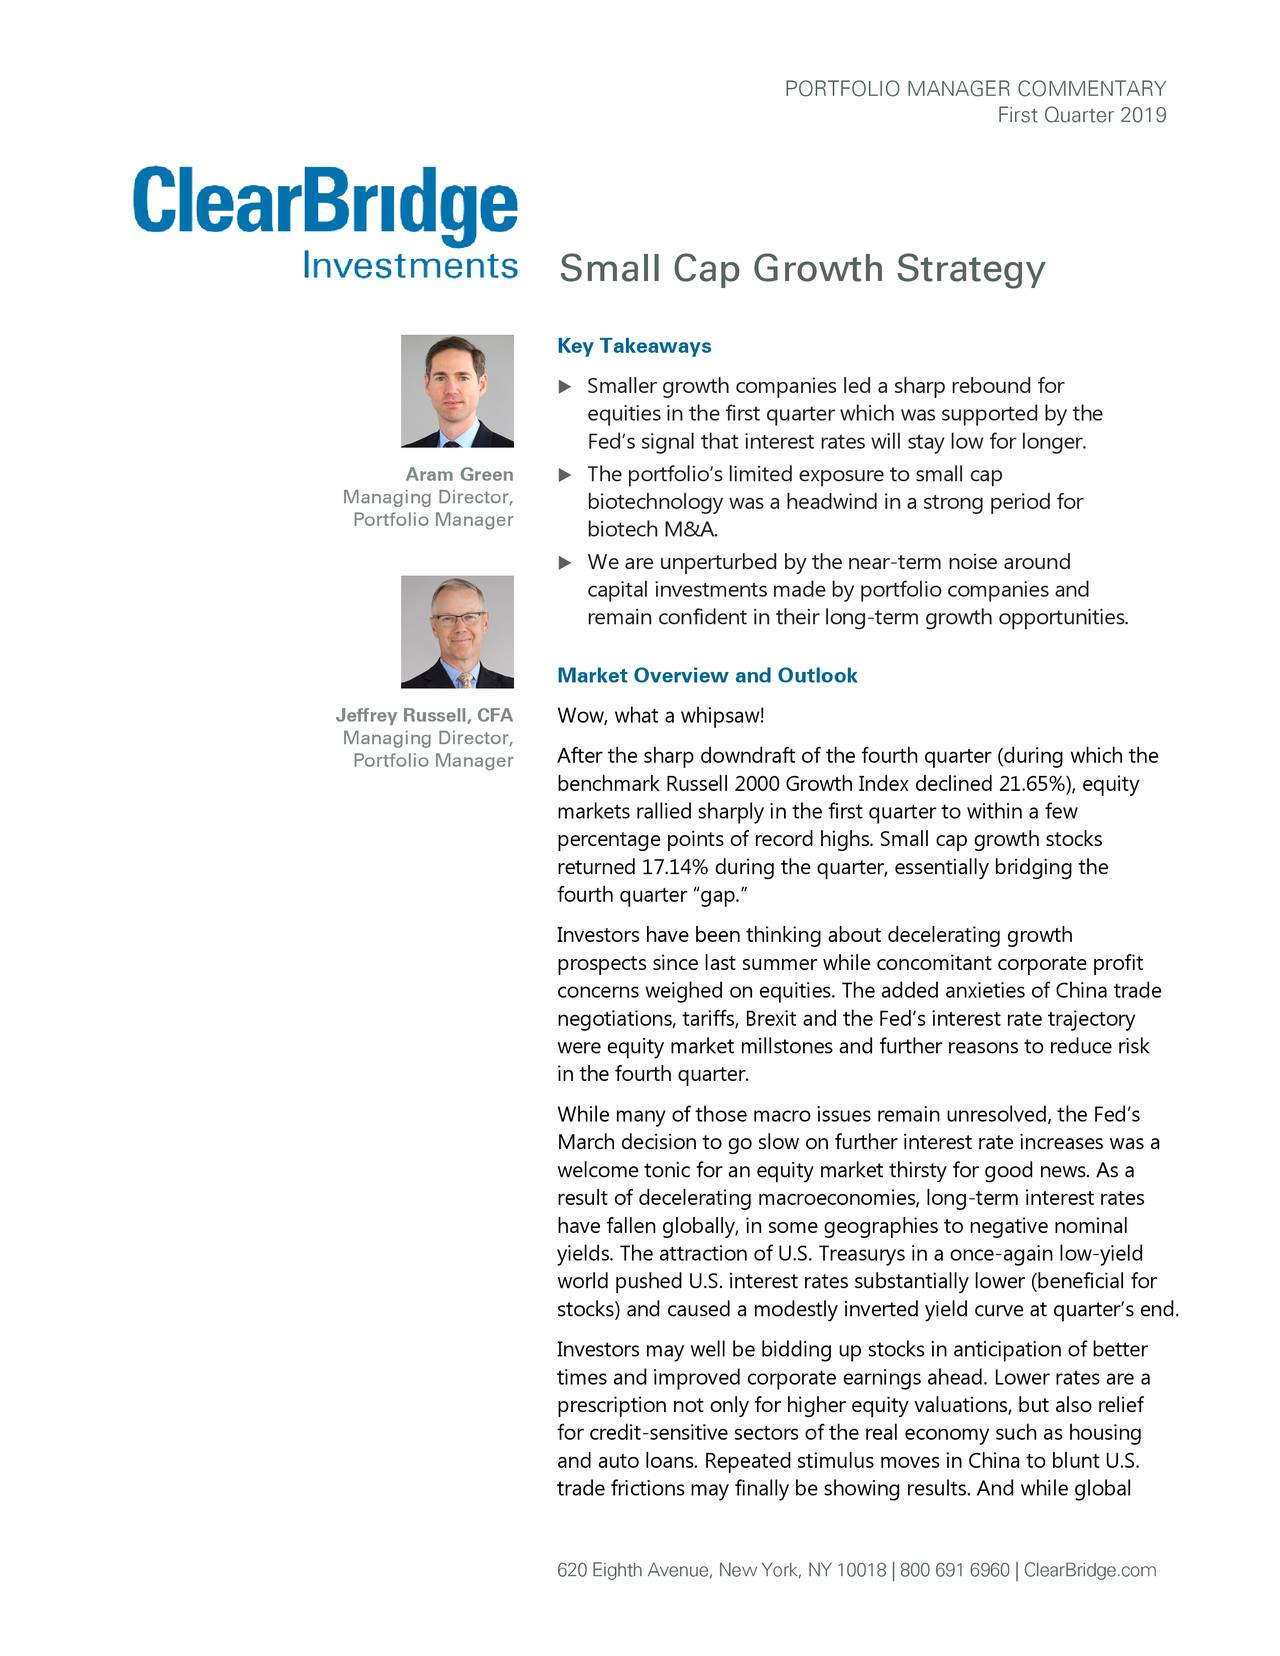 """First Quarter 2019 Small Cap Growth Strategy Key Takeaways  Smaller growth companies led a sharp rebound for equities in the first quarter which was supported by the Fed's signal that interest rates will stay low for longer. Aram Green  The portfolio's limited exposure to small cap Managing Director, biotechnology was a headwind in a strong period for Portfolio Manager biotech M&A.  We are unperturbed by the near -term noise around capital investments made by portfolio companies and remain confident in their long- term growth oppor tunities. Market Overview and Outlook Jeffrey Russell, CFA Wow, what a whipsaw! Managing Director, Portfolio Manager After the sharp downdraft of the fourth quarter (during which the benchmark Russell 2000 Growth Index declined 21.65%), equity markets rallied sharply in the first quarter to within a few percentage points of record highs. Small cap growth stocks returned 17.14% during the quarter, essentially bridging the fourth quarter """"gap."""" Investors have been thinking about decelerating growth prospects since last summer while concomitant corporate profit concerns weighed on equities. The added anxieties of China trade negotiations, tariffs, Brexit and the Fed's interest rate trajectory were equity market millstones and further reasons to reduce risk in the fourth quarter. While many of those macro issues remain unresolved, the Fed's March decision to go slow on further interest rate increases was a welcome tonic for an equity market thirsty for good news. As a result of decelerating macroeconomies, long-term interest rates have fallen globally, in some geographies to negative nominal yields. The attraction of U.S. Treasurys in a once-again low-yield world pushed U.S. interest rates substantially lower (beneficial for stocks) and caused a modestly inverted yield curve at quarter's end. Investors may well be bidding up stocks in anticipation of better times and improved corporate earnings ahead. Lower rates are a prescription not only f"""